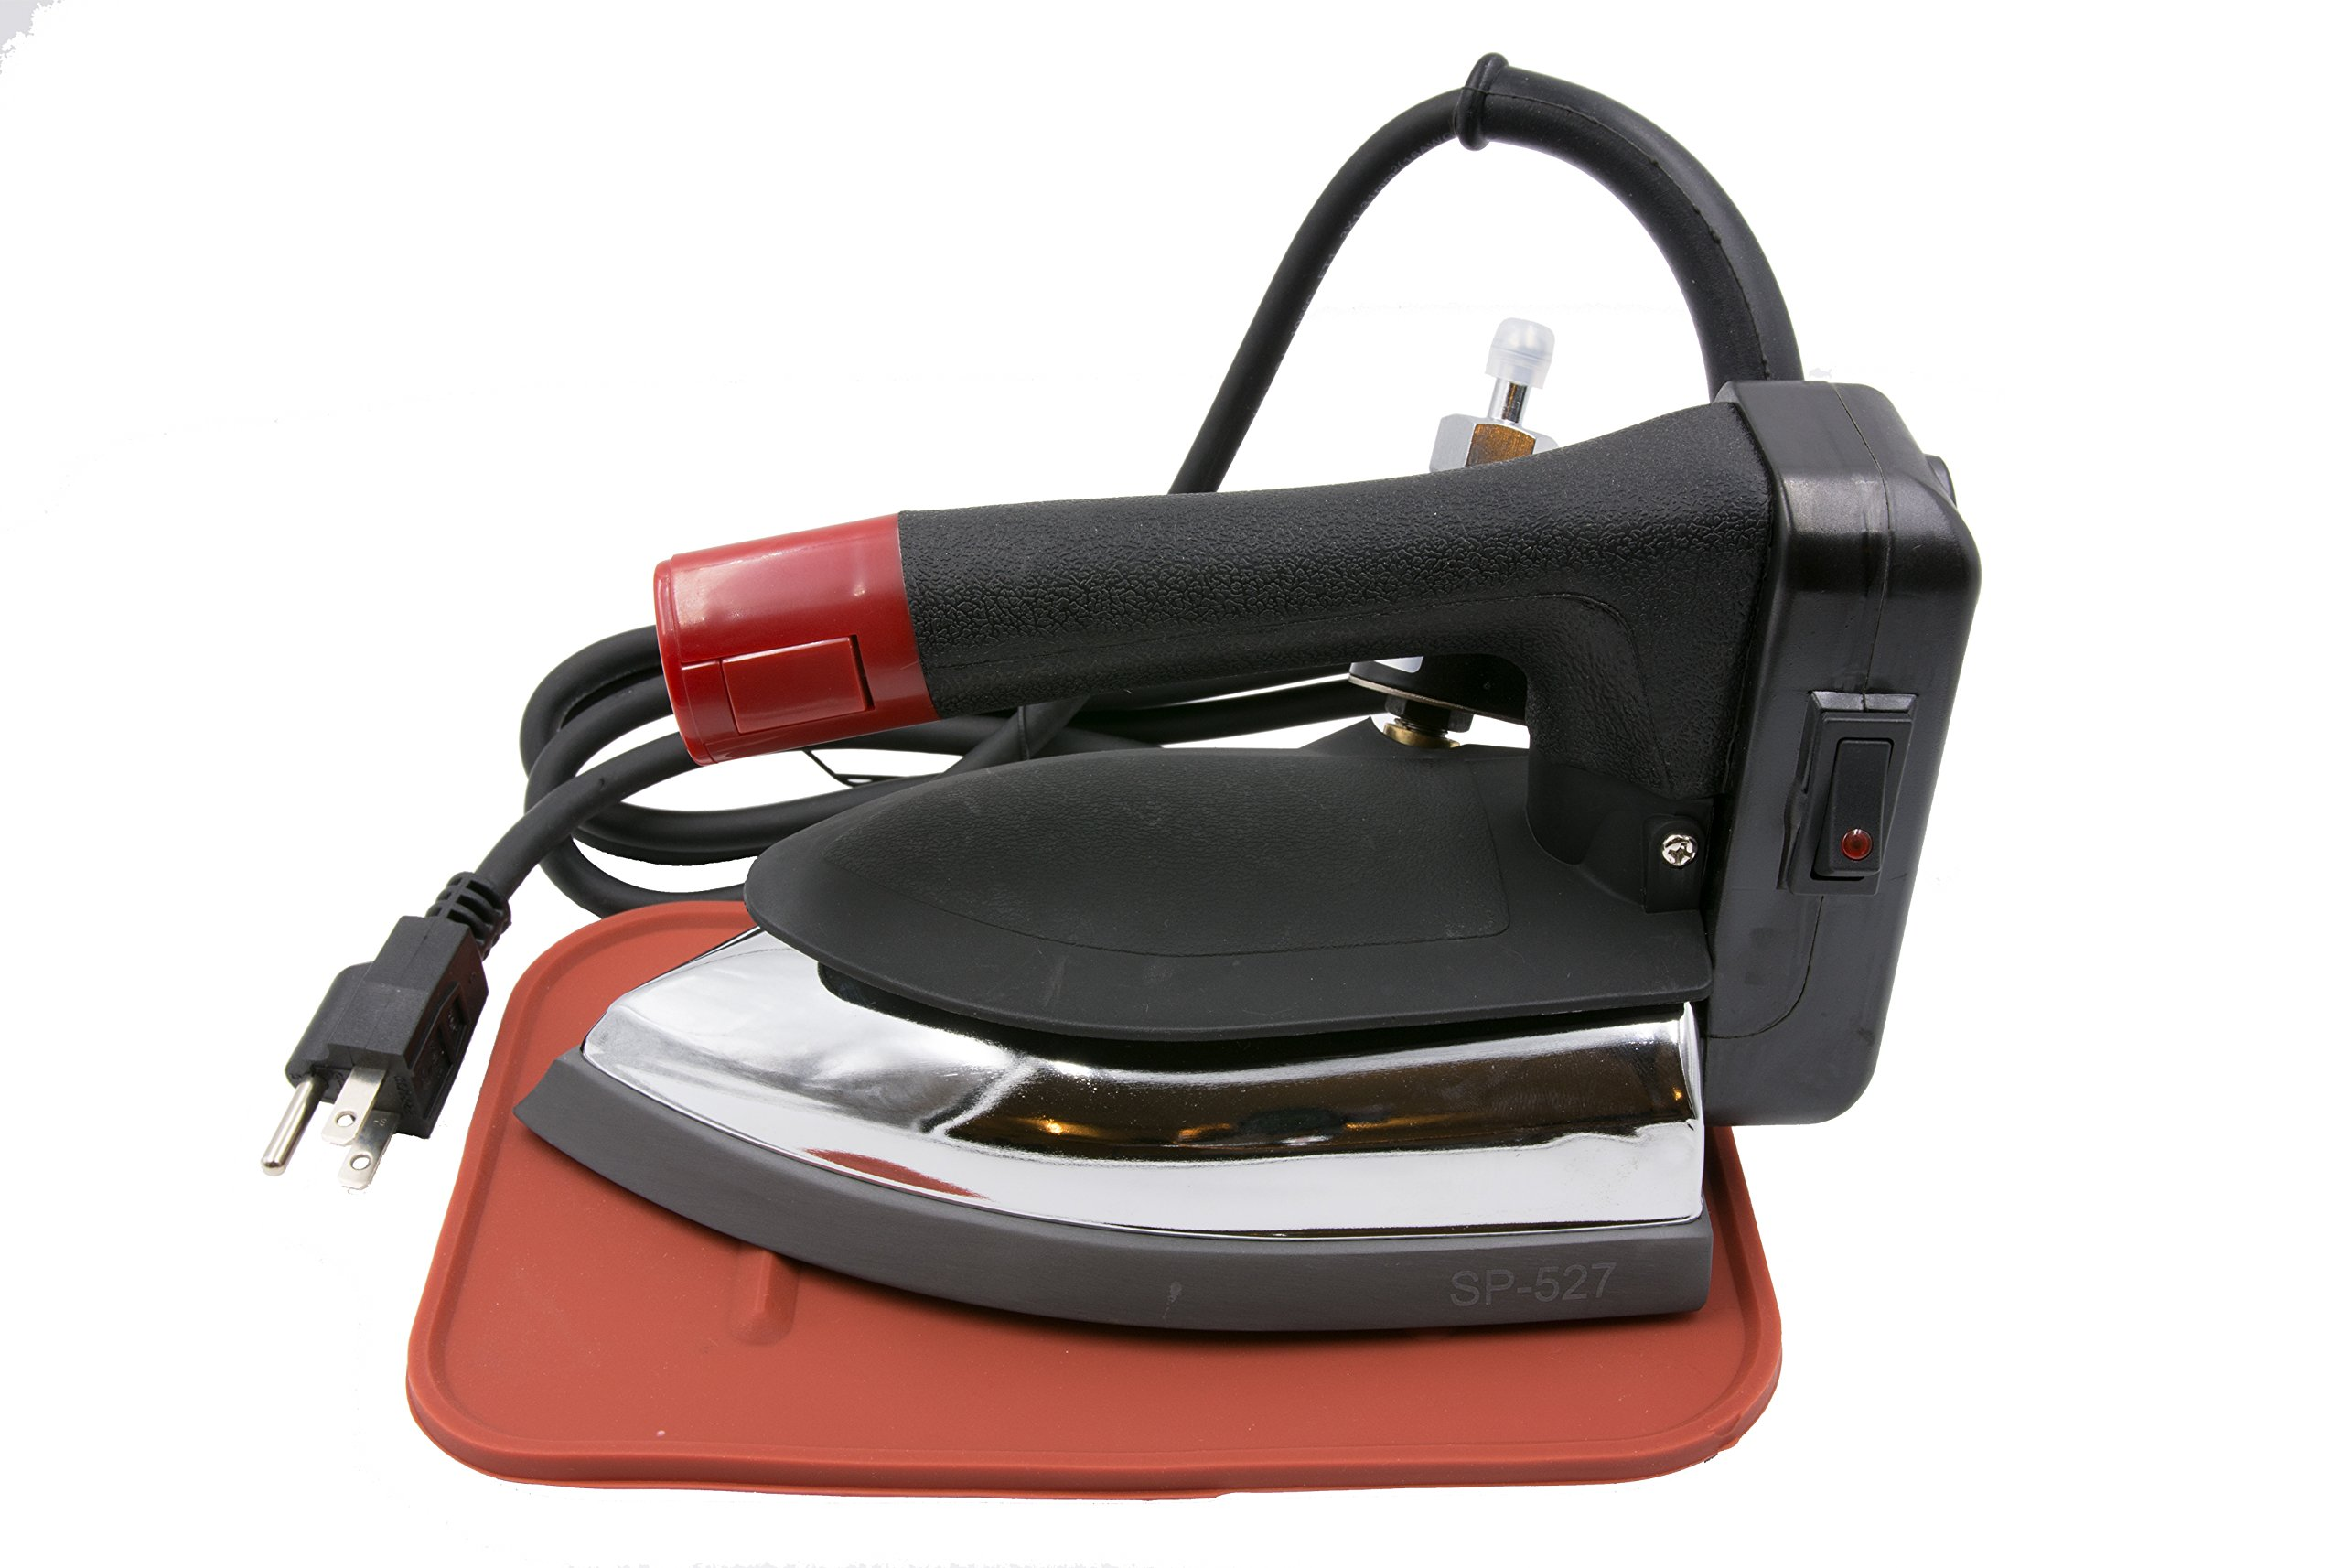 SAPPORO SP527/SP-527 Gravity Feed Bottle Steam Iron (compare with Silver Star)